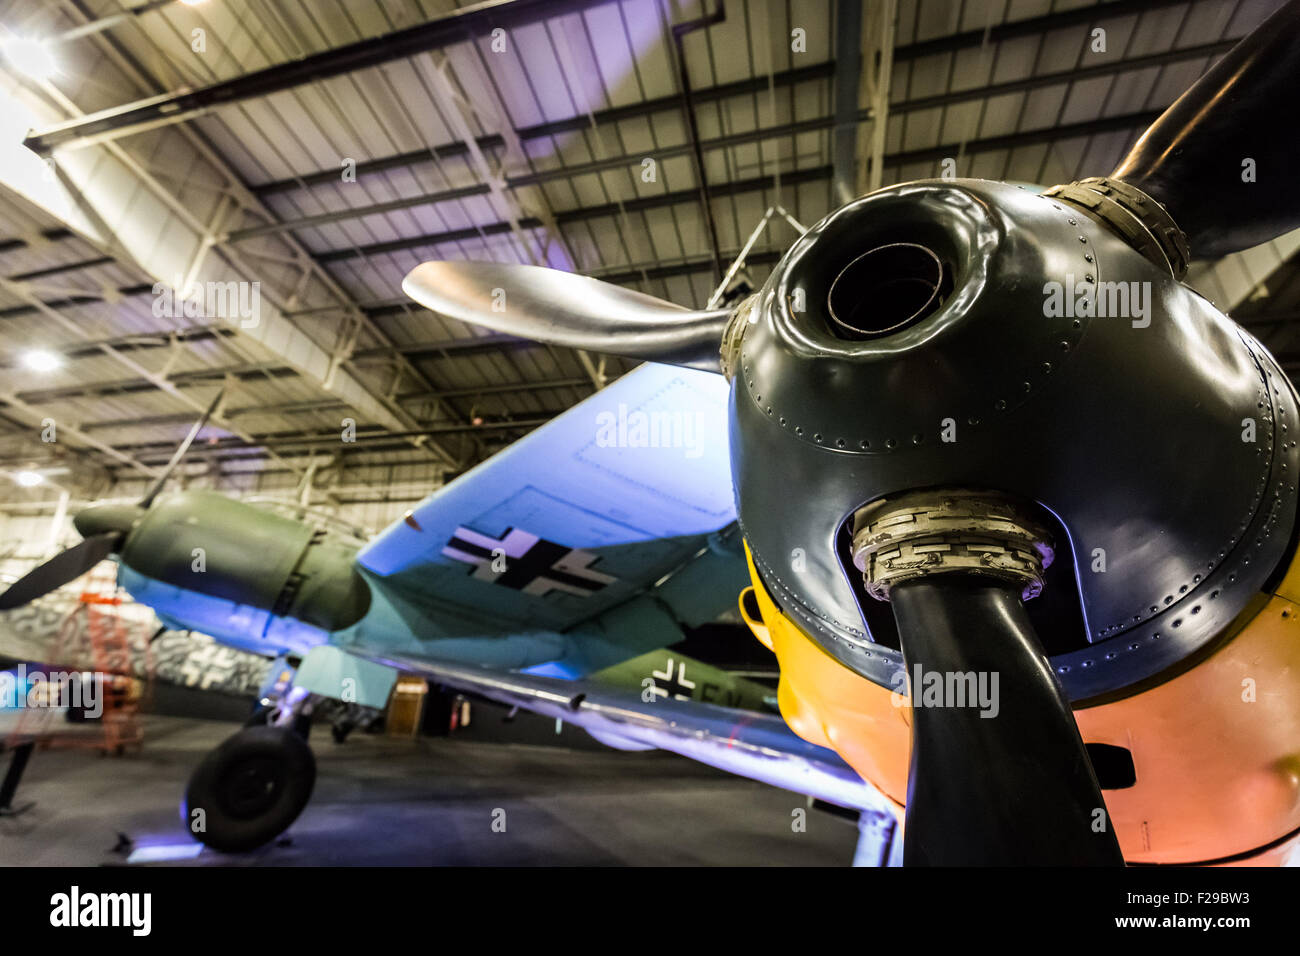 London, UK. 14th September, 2015. German planes Messerschmitt Bf109E (R) and Junkers JU88 Bomber (L). The RAF Museum - Stock Image